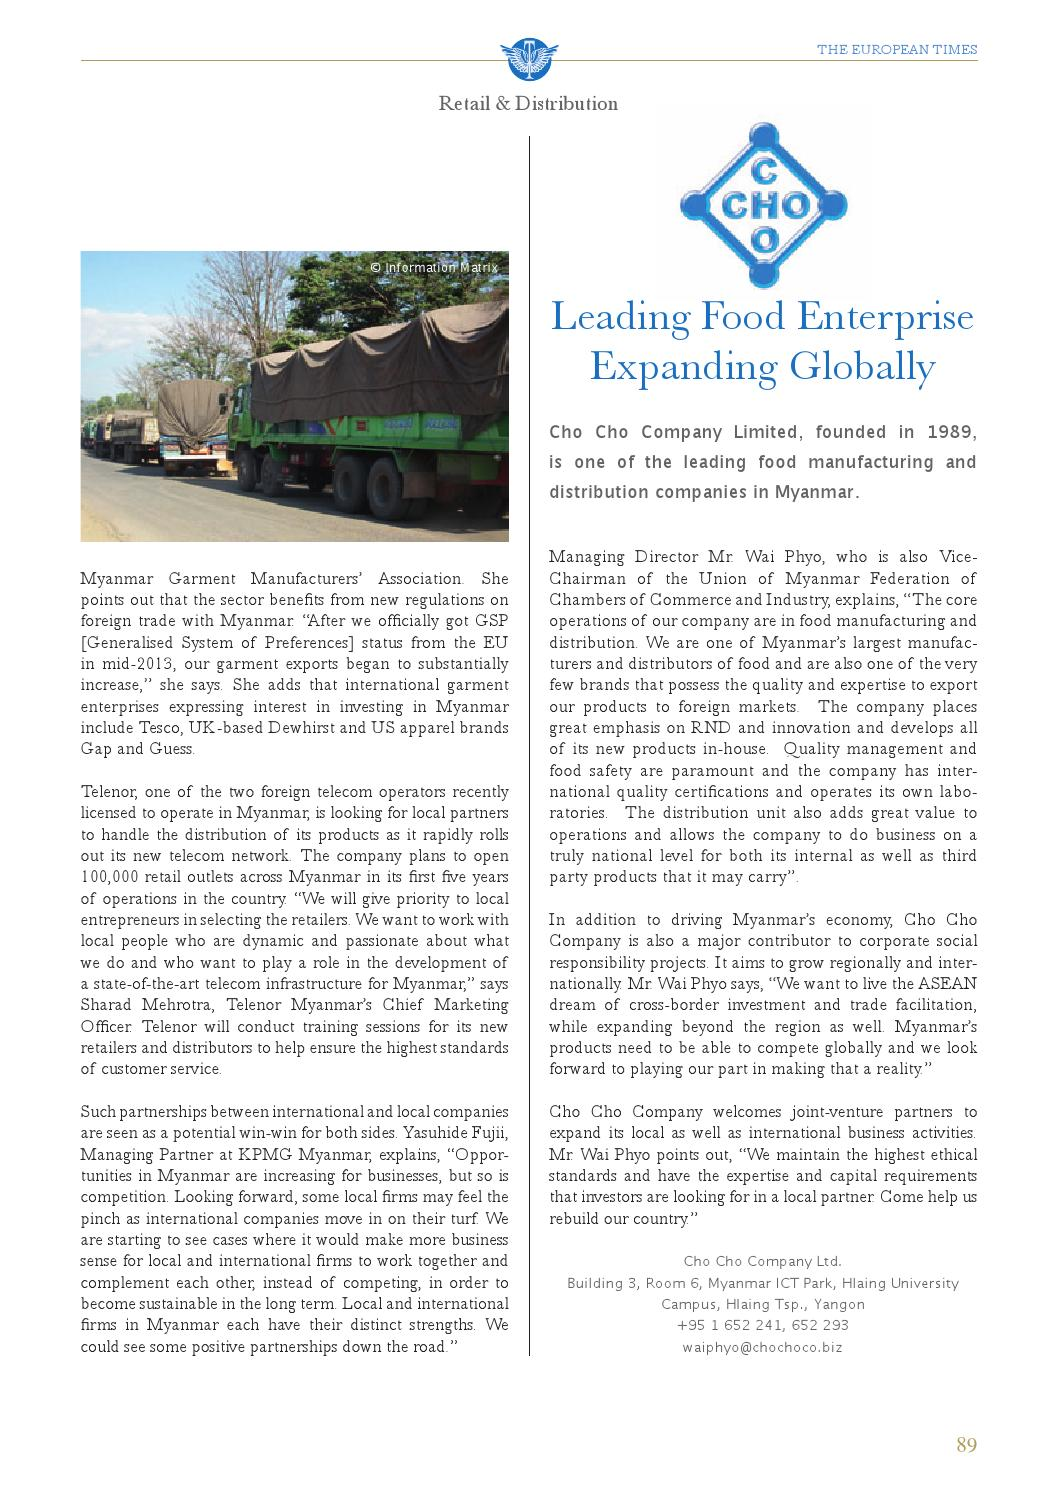 The European Times - Myanmar by The European Times - issuu